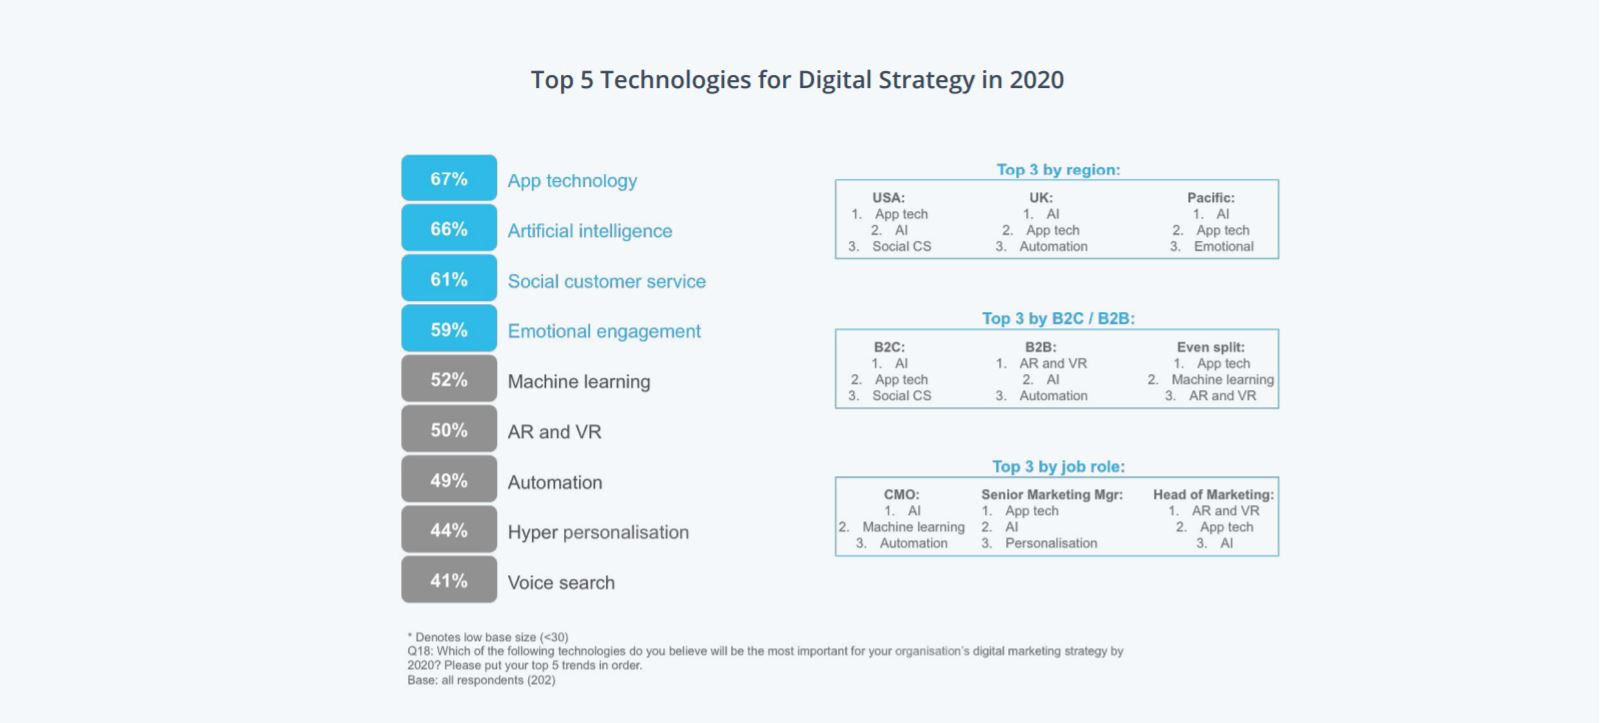 Top 5 Technologies for Digital Strategy in 2020